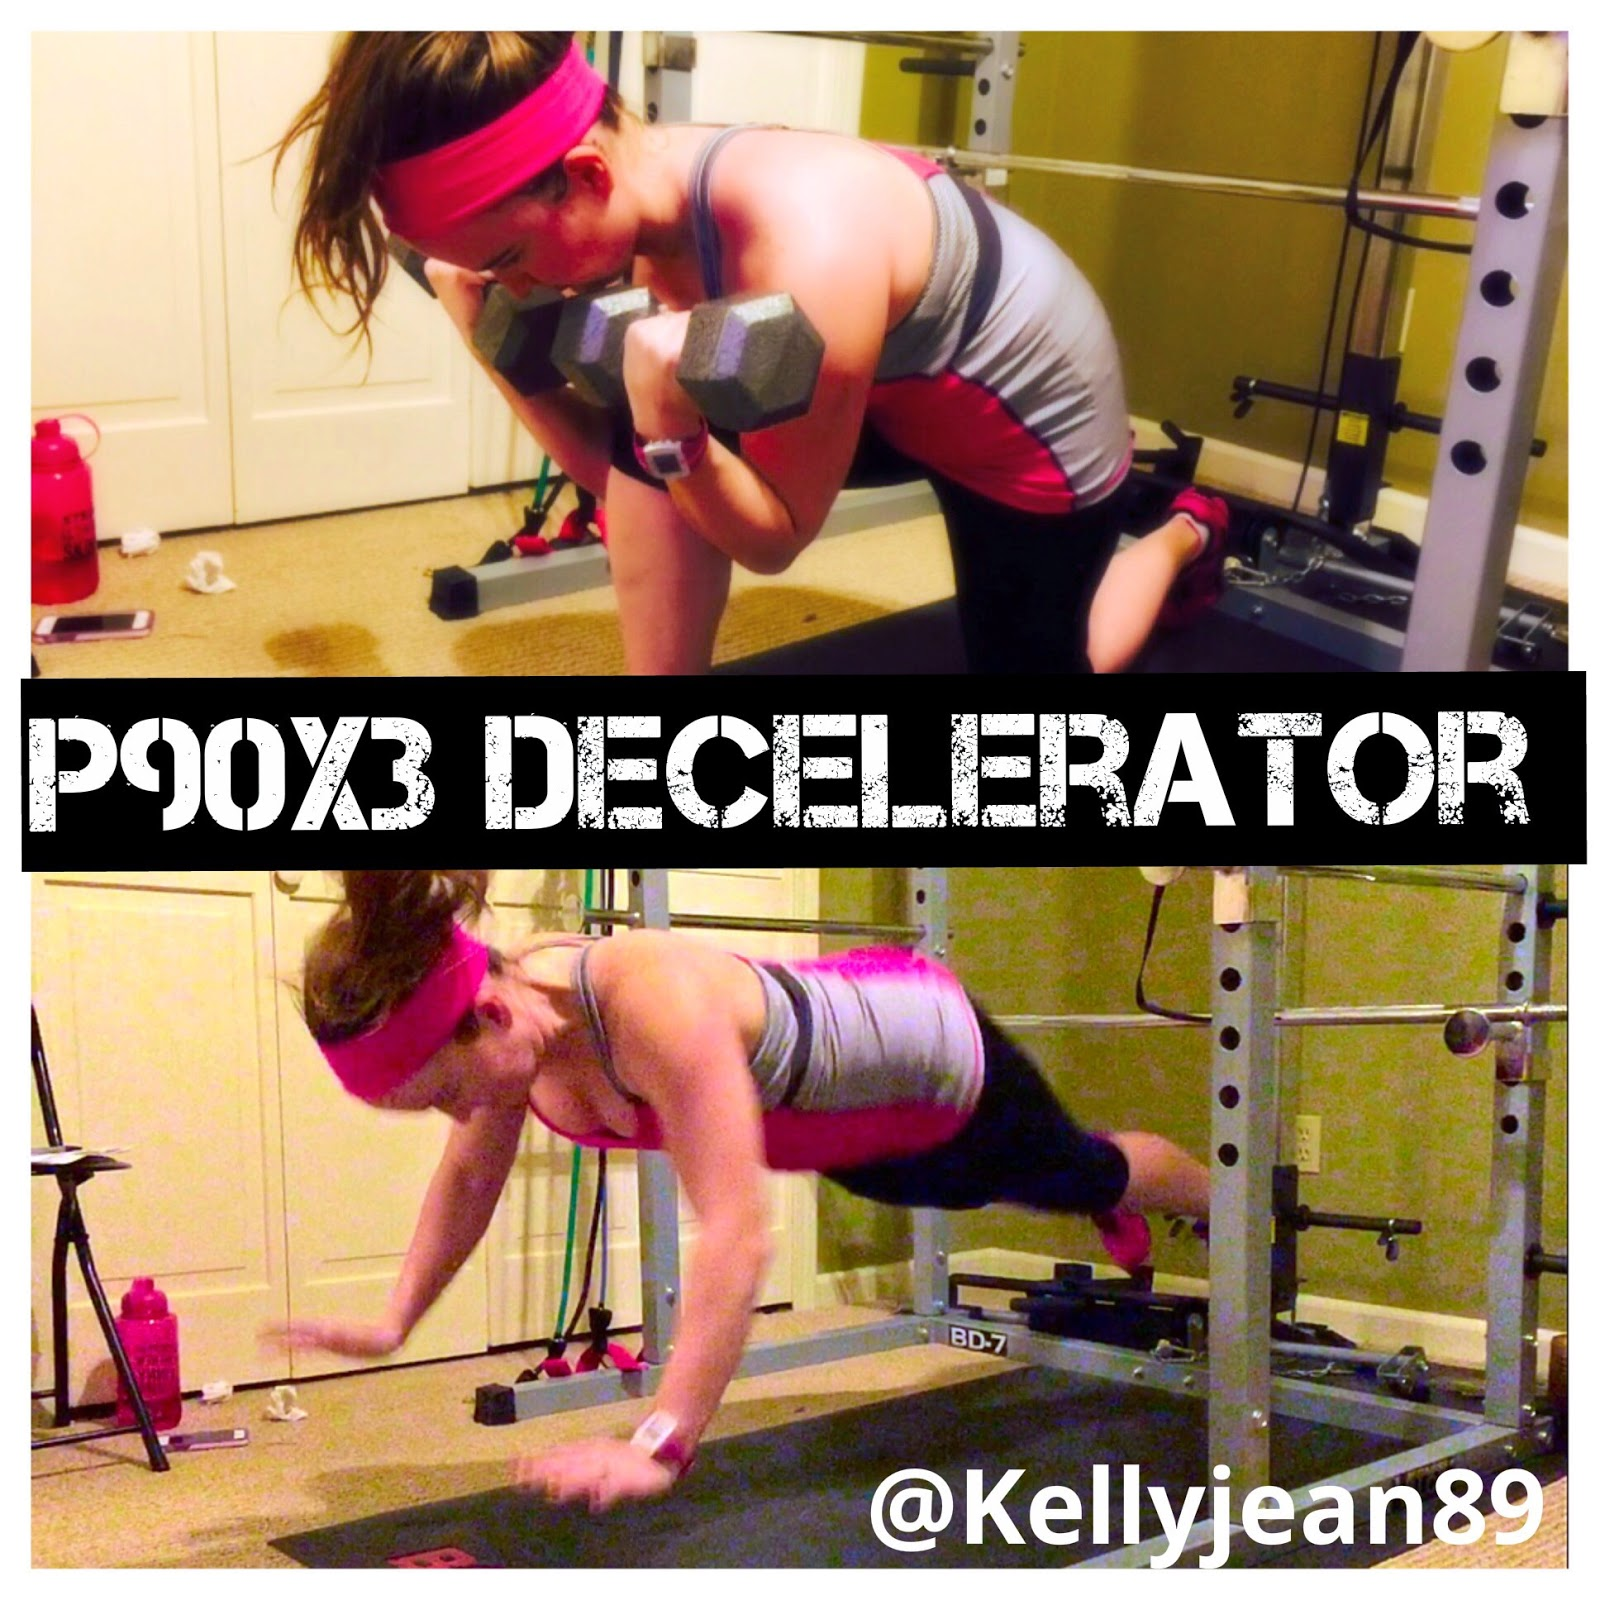 Everything Kelly Jean: P90X3 Month 3 - How to Avoid Holiday Weight Gain